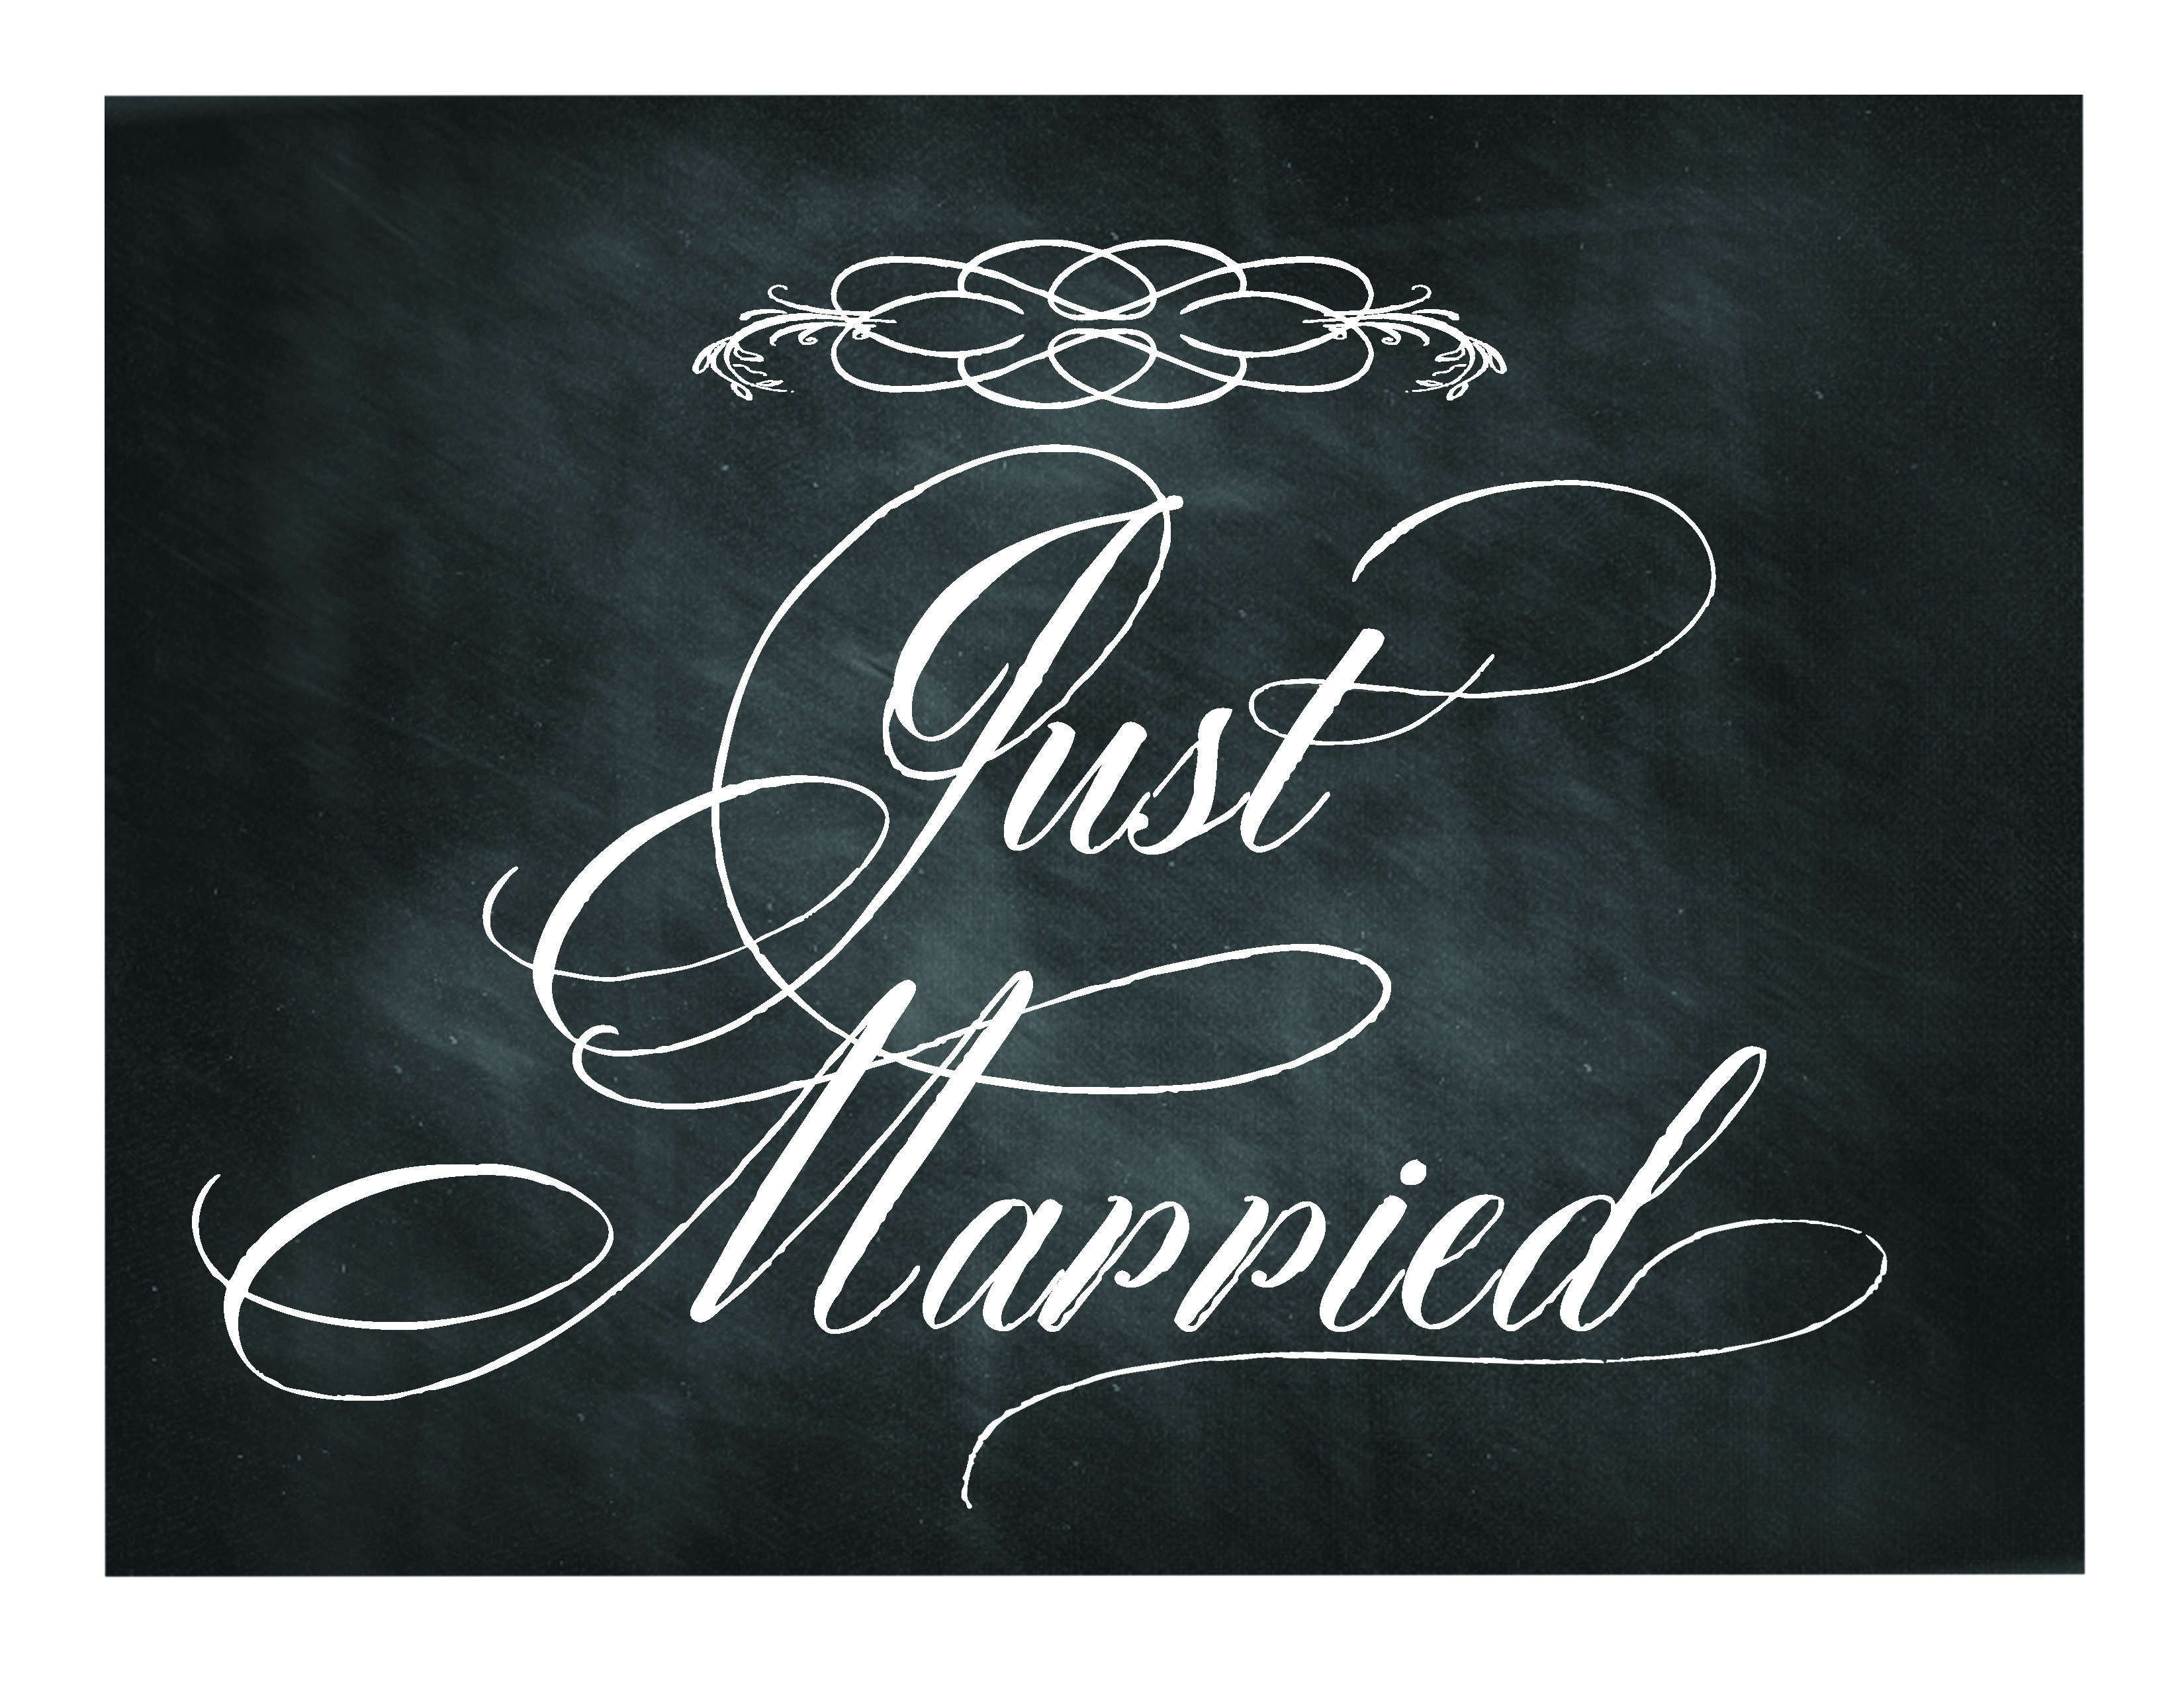 Free Printable Chalkboard Sign: Just Married | Domlovesmary Font - Just Married Free Printable